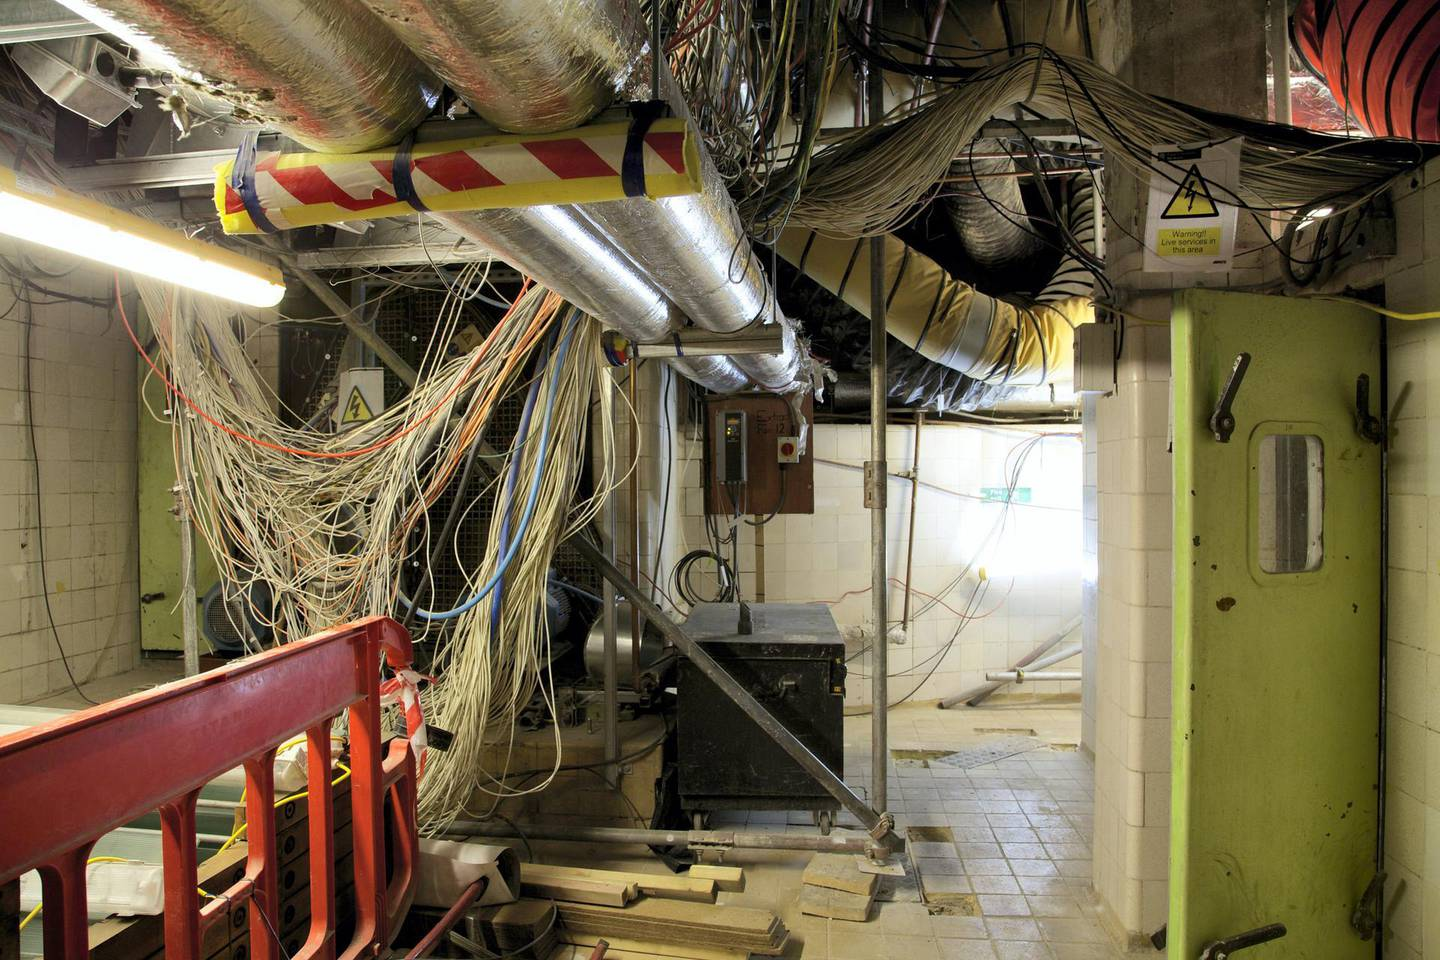 """A handout picture released by the UK Parliament on January 30, 2018 and taken on April 24, 2014 shows one of the 100 plant rooms in the basement of the Palace of Westminster in London.    British lawmakers were set to deabte the proposed restoration of the Palace of Westminster, the historic palace that houses the UK Houses of Parliament. A parliamentary report published in 2016 recommended that lawmakers should move out of the crumbling building while it is renovated to avert a crisis. Behind its neo-Gothic facades topped by the world-famous Big Ben clock tower, the mother of parliaments has been eroded by air pollution, overrun with mice and crumbling, prompting warnings it may have to be permanently abandoned unless urgent renovations are carried out costing billions of pounds.  / AFP PHOTO / UK PARLIAMENT / HO / RESTRICTED TO EDITORIAL USE - MANDATORY CREDIT  """" AFP PHOTO / UK PARLIAMENT """"  -  NO MARKETING NO ADVERTISING CAMPAIGNS   -   DISTRIBUTED AS A SERVICE TO CLIENTS SPECIFICALLY TO ILLUSTRATE THE AFP STORY BY JOE JACKSON DATED JAN 31, 2018 -  NO ARCHIVE - RESTRICTED TO SUBSCRIPTION USE - NO SALES - NO USE ON ANY SOCIAL MEDIA PLATFORM - NOT TO BE ADAPTED ALTERED OR MANIPULATED  / TO GO WITH AFP STORY BY JOE JACKSON"""